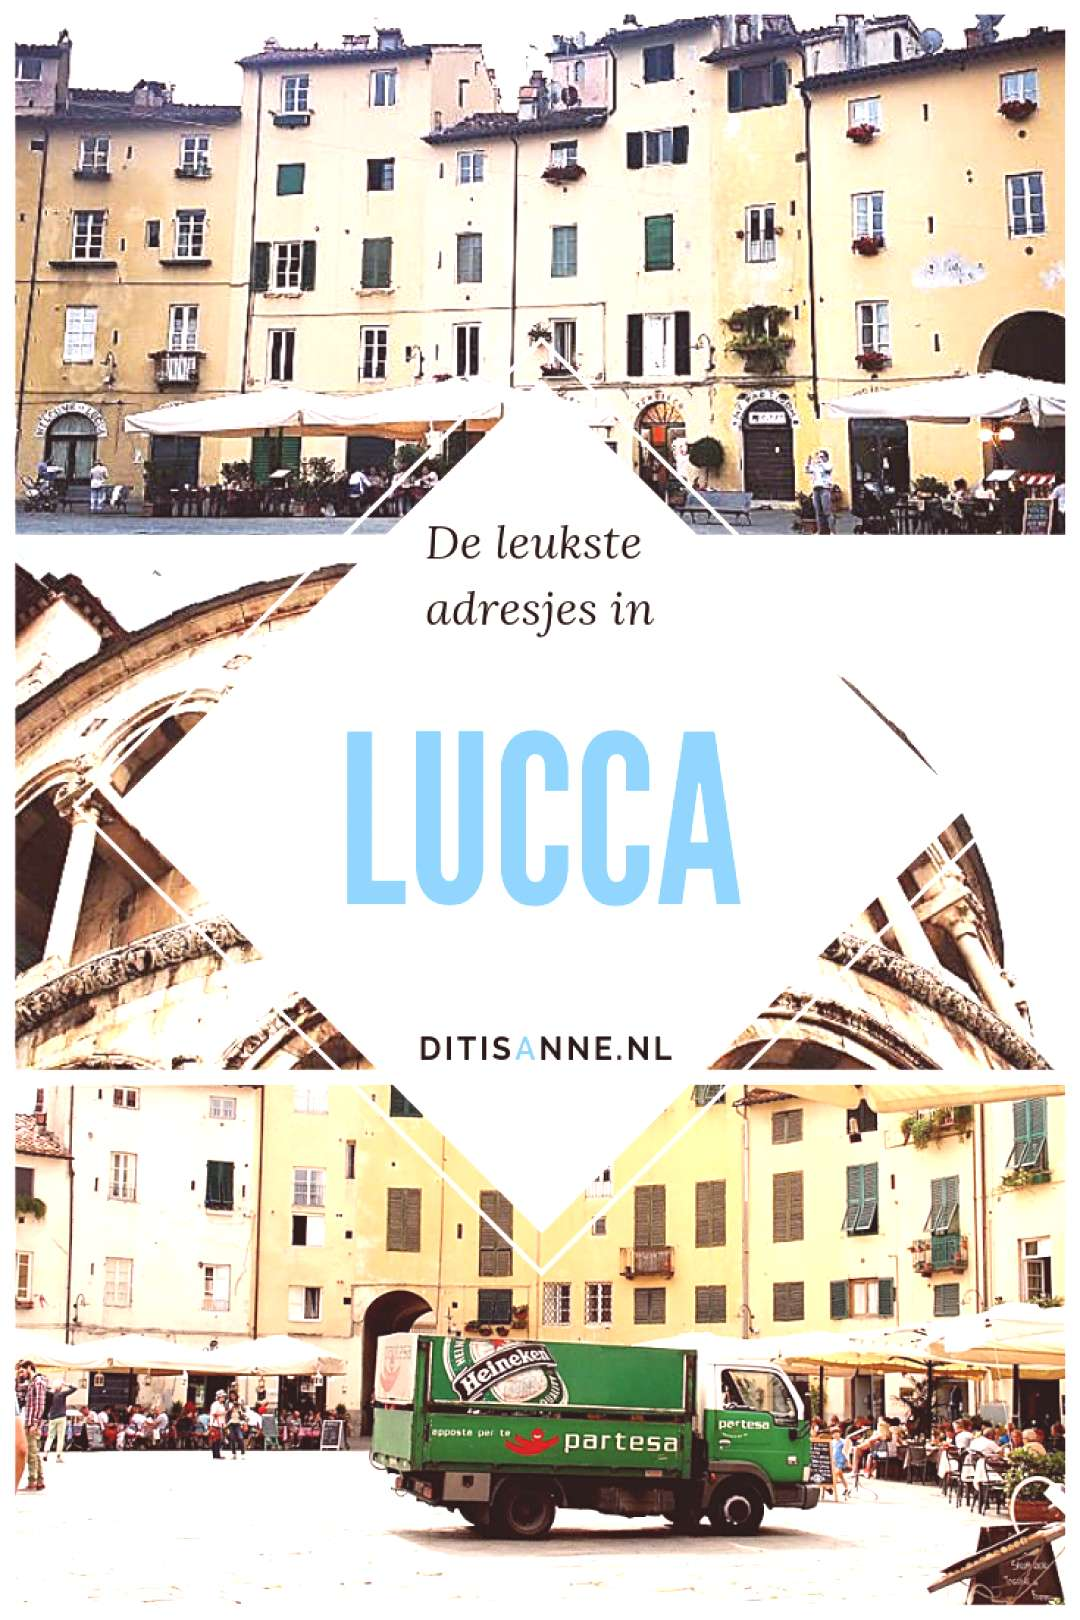 LUCCA: Sightseeing, restaurants and other tips -  One of the larger and well-known cities is Lucca,